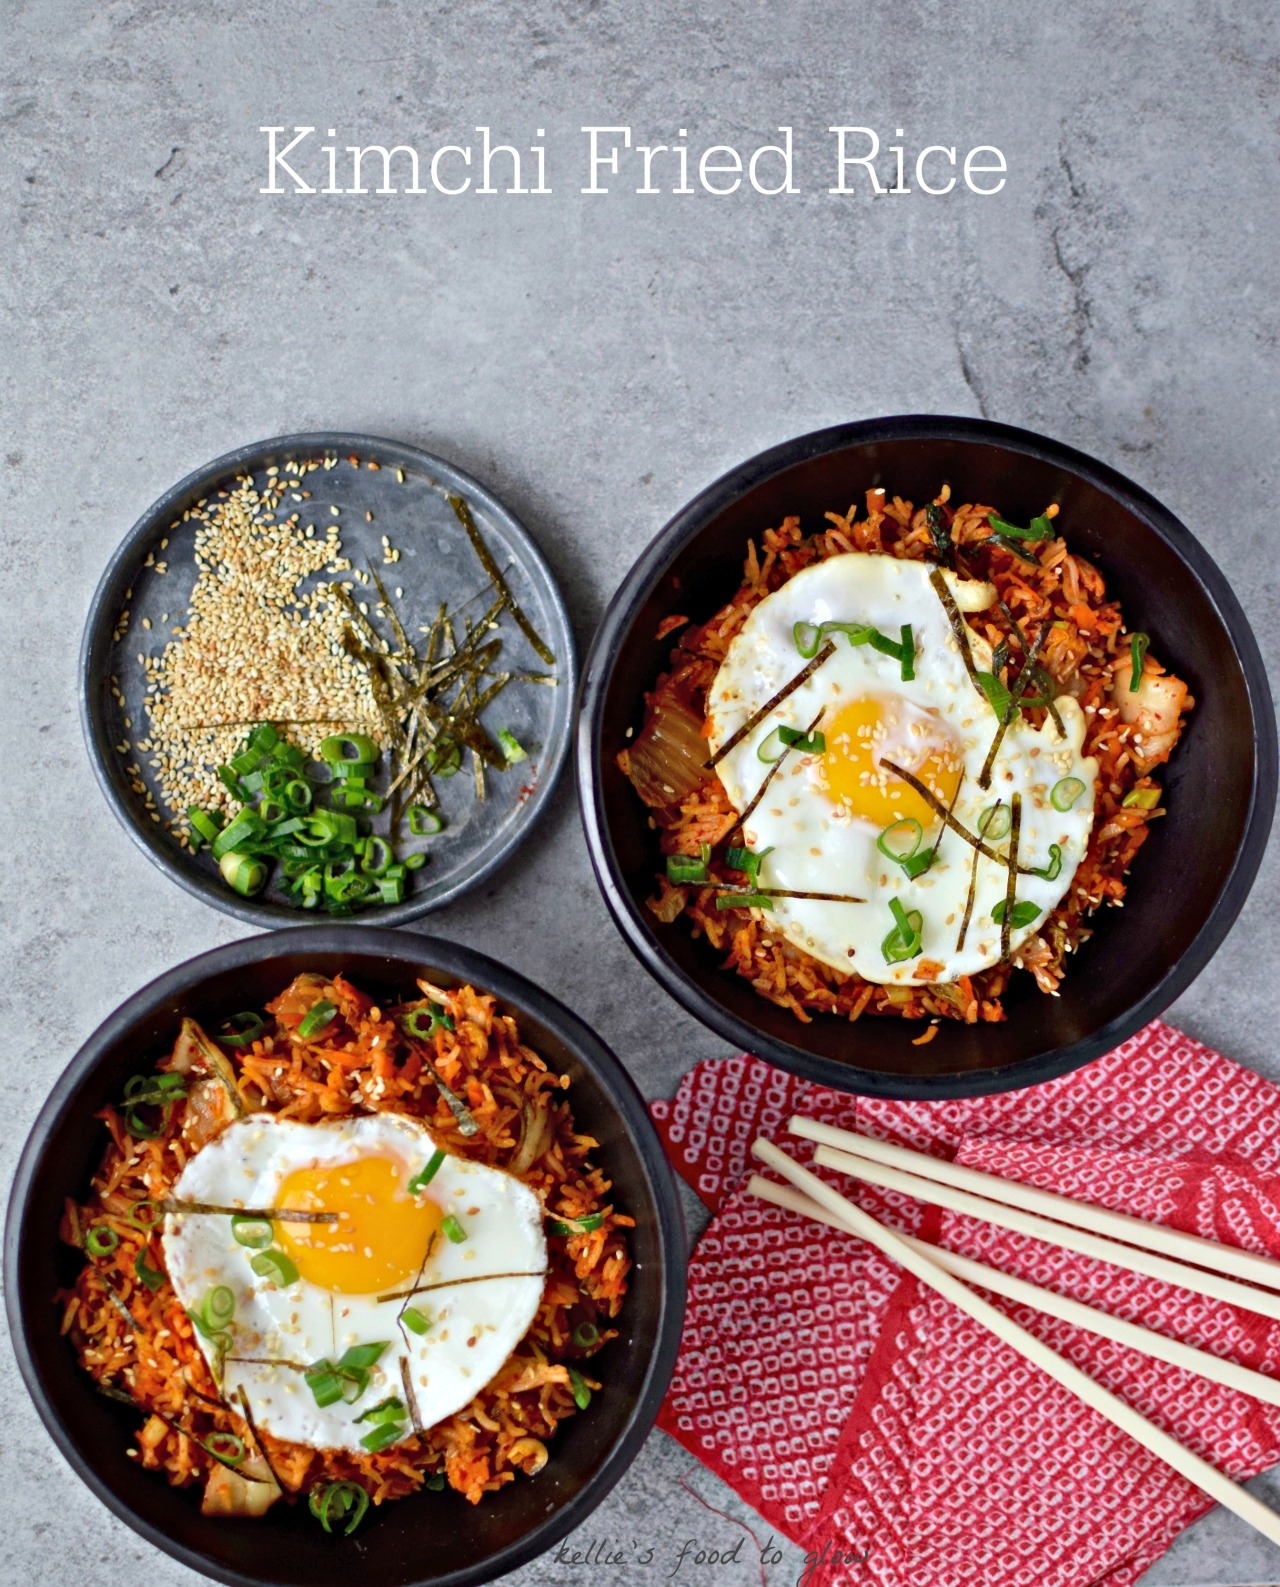 An easy, vegetarian and family-friendly introduction to fermented food superfood, kimchi.